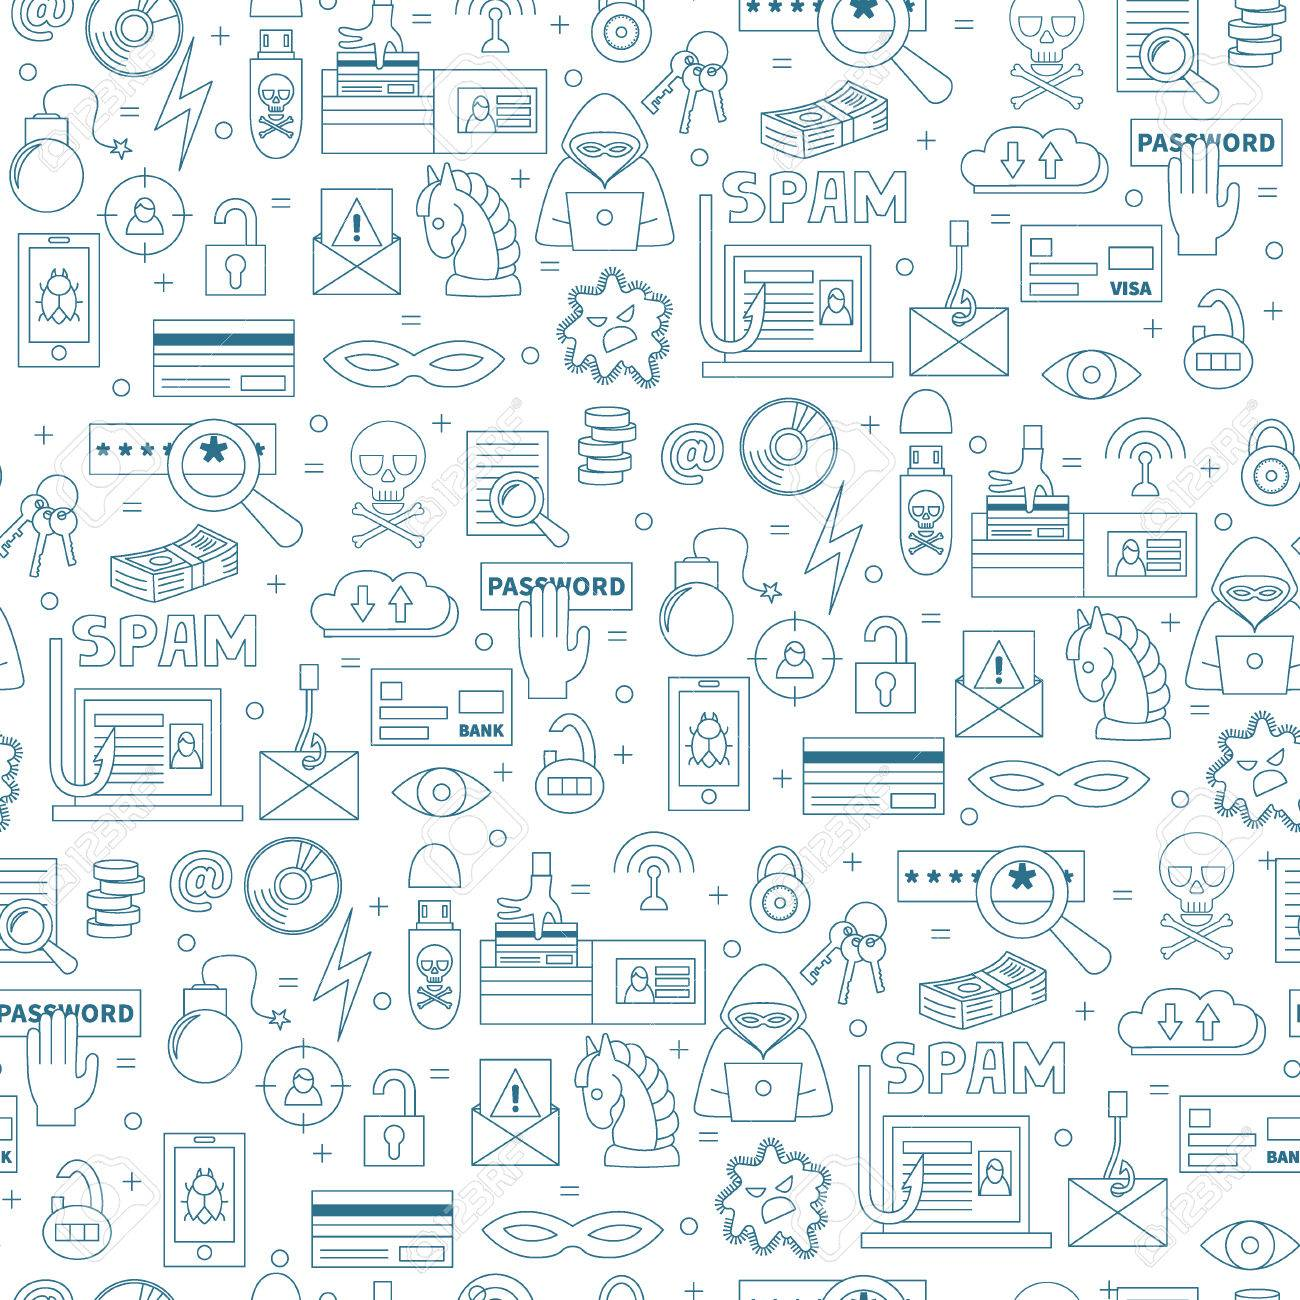 hacking and cyber crime vector seamless pattern with icons of royalty free cliparts vectors and stock illustration image 69587151 hacking and cyber crime vector seamless pattern with icons of